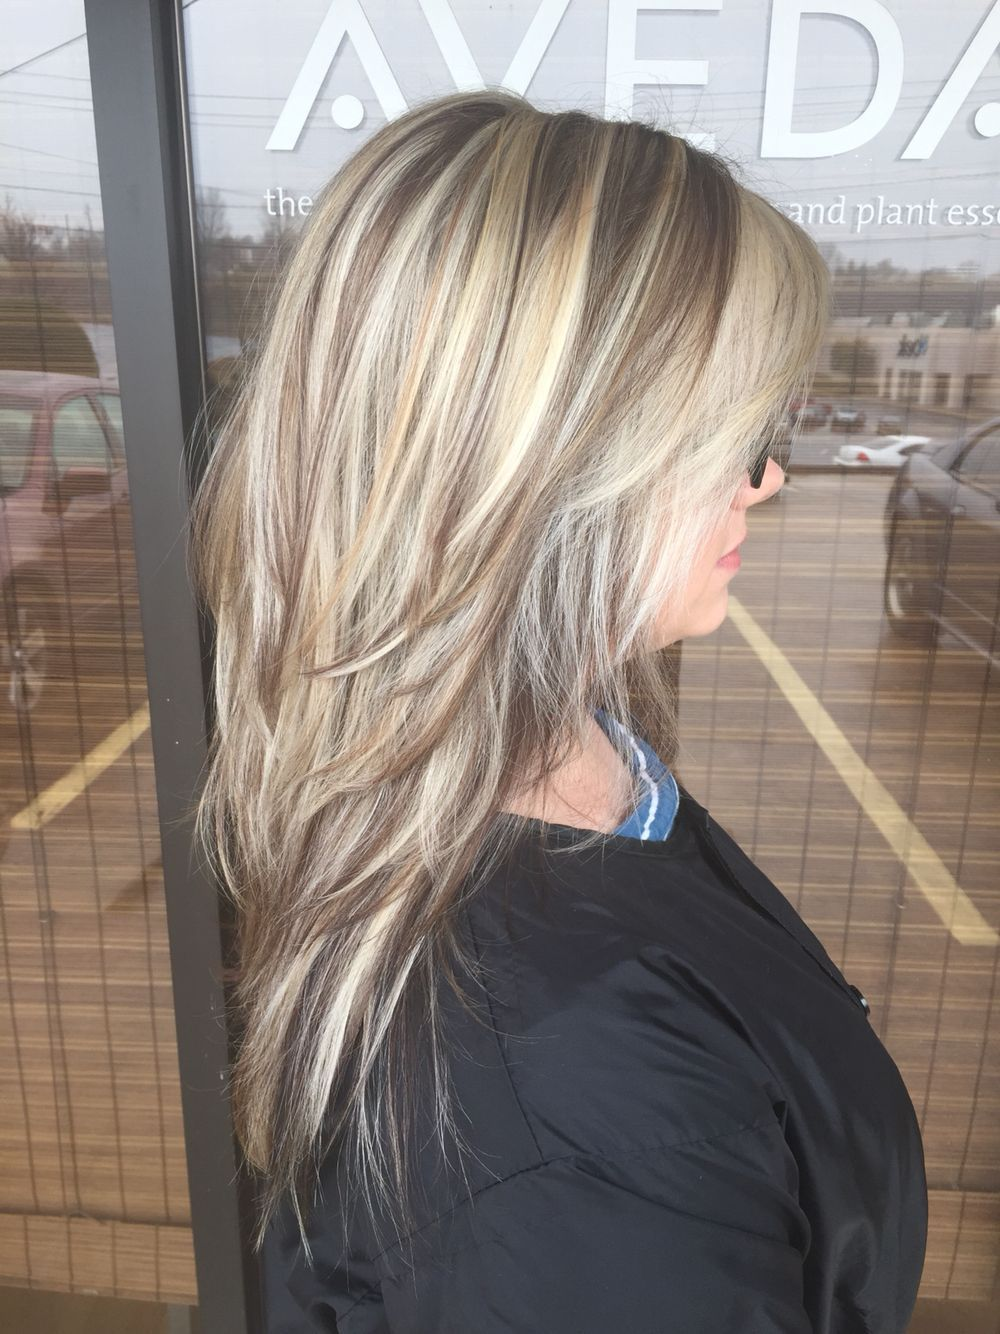 Chunky Blonde Highlights In Light Brown Hair | www ...